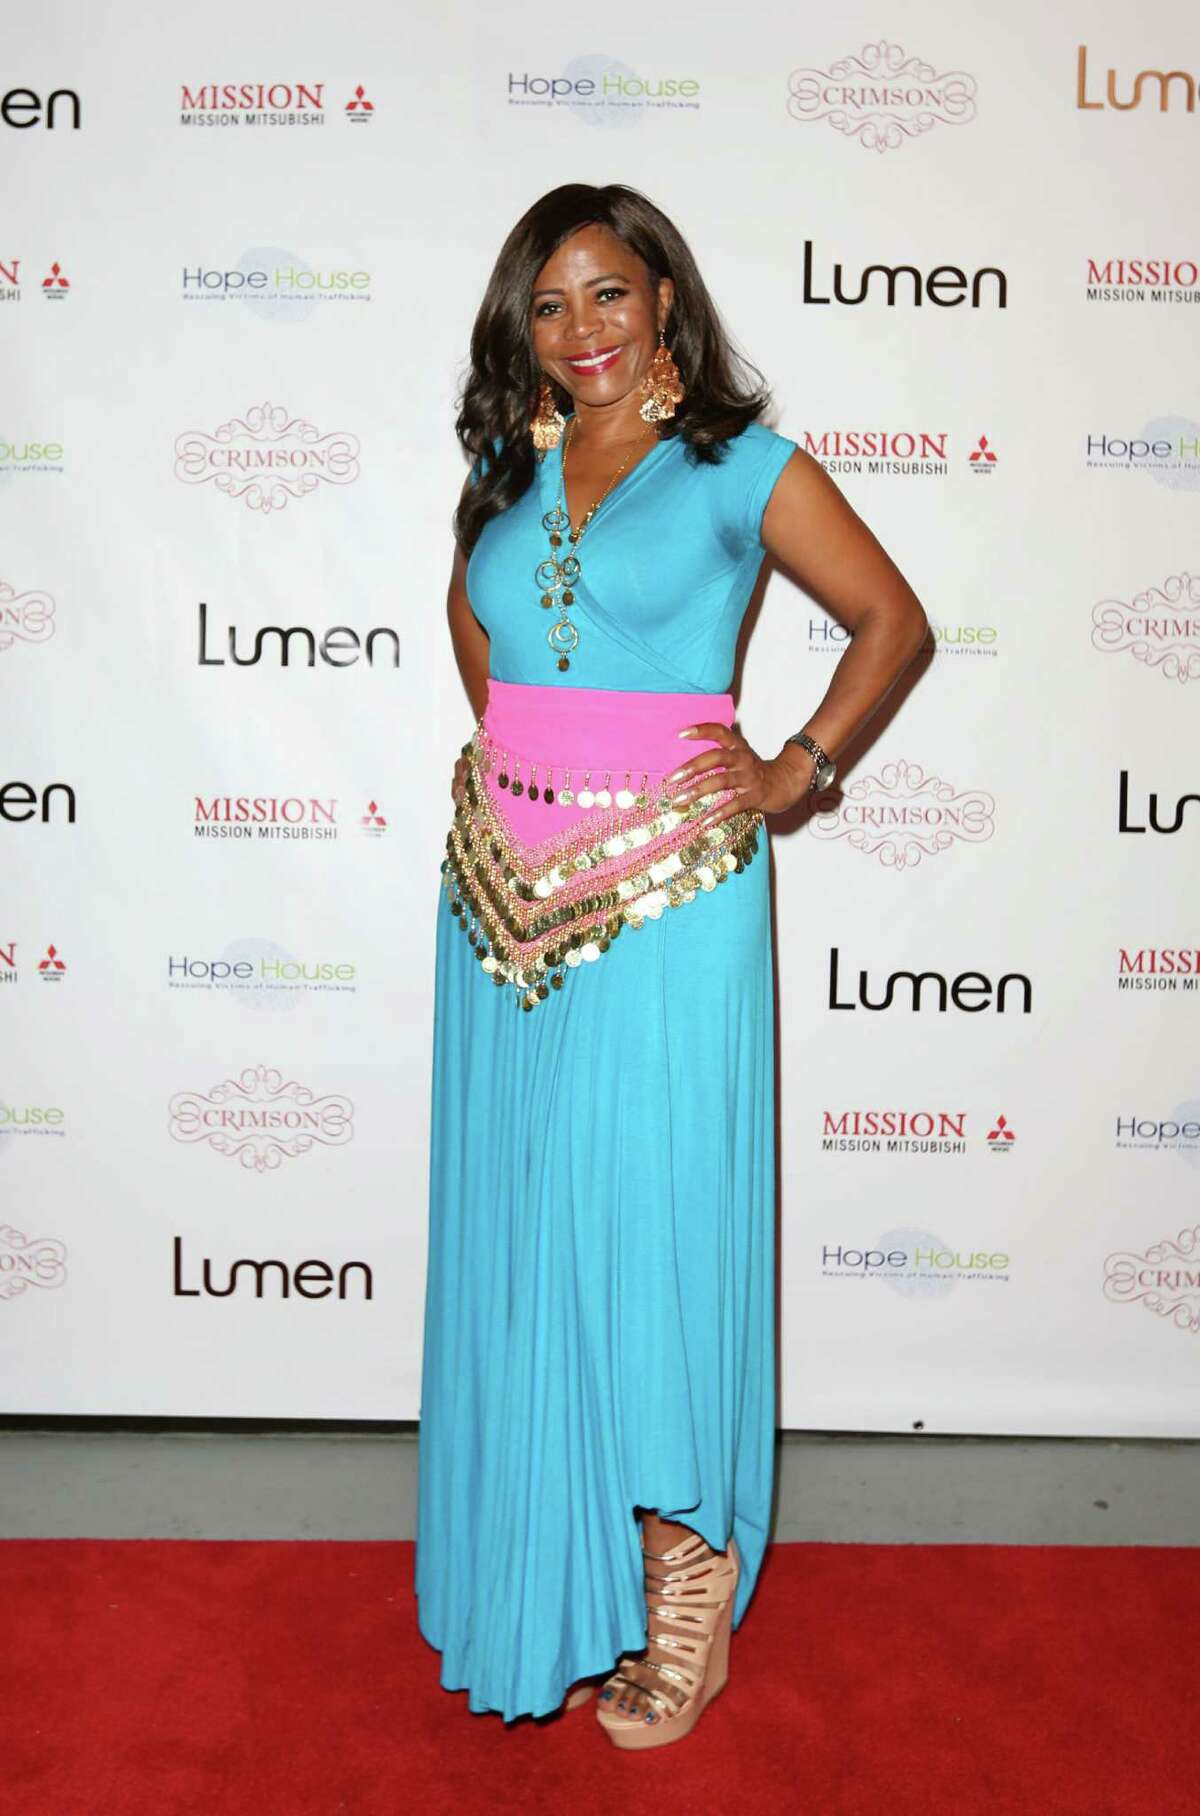 FILE - Darian Ward attends the Bollywood Blitz event in Houston, Texas on June 5, 2015. Mayor Sylvester Turner suspended Ward for 10 days, accusing her of conducting personal business on city time and failing to turn over public records requested by a local journalist.